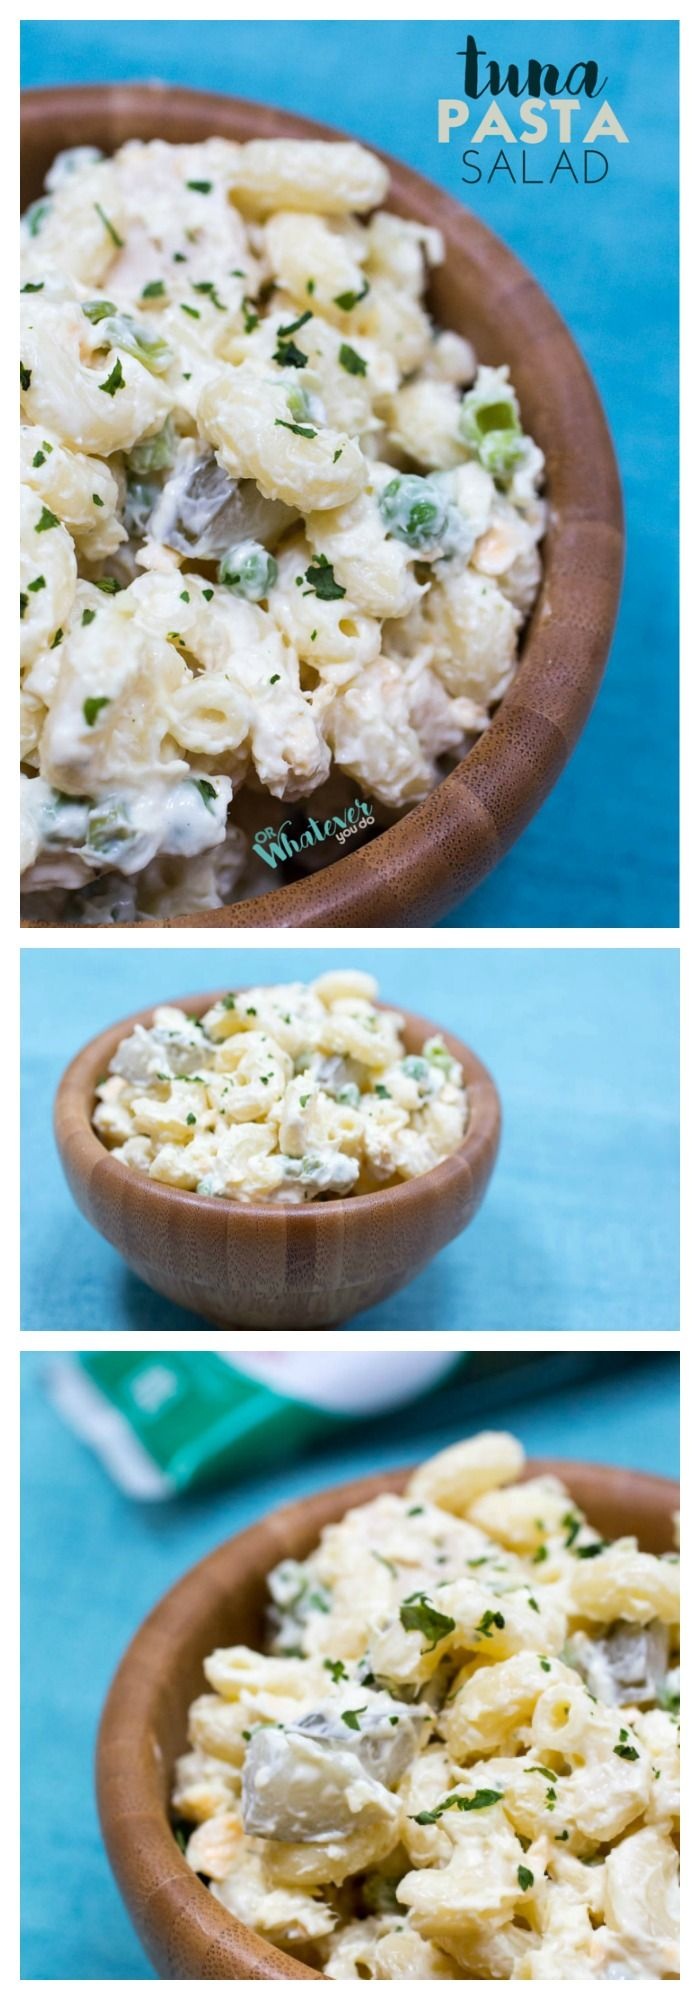 Get the taste of summer with this easy macaroni salad with tuna and dill. Great side dish for BBQs!